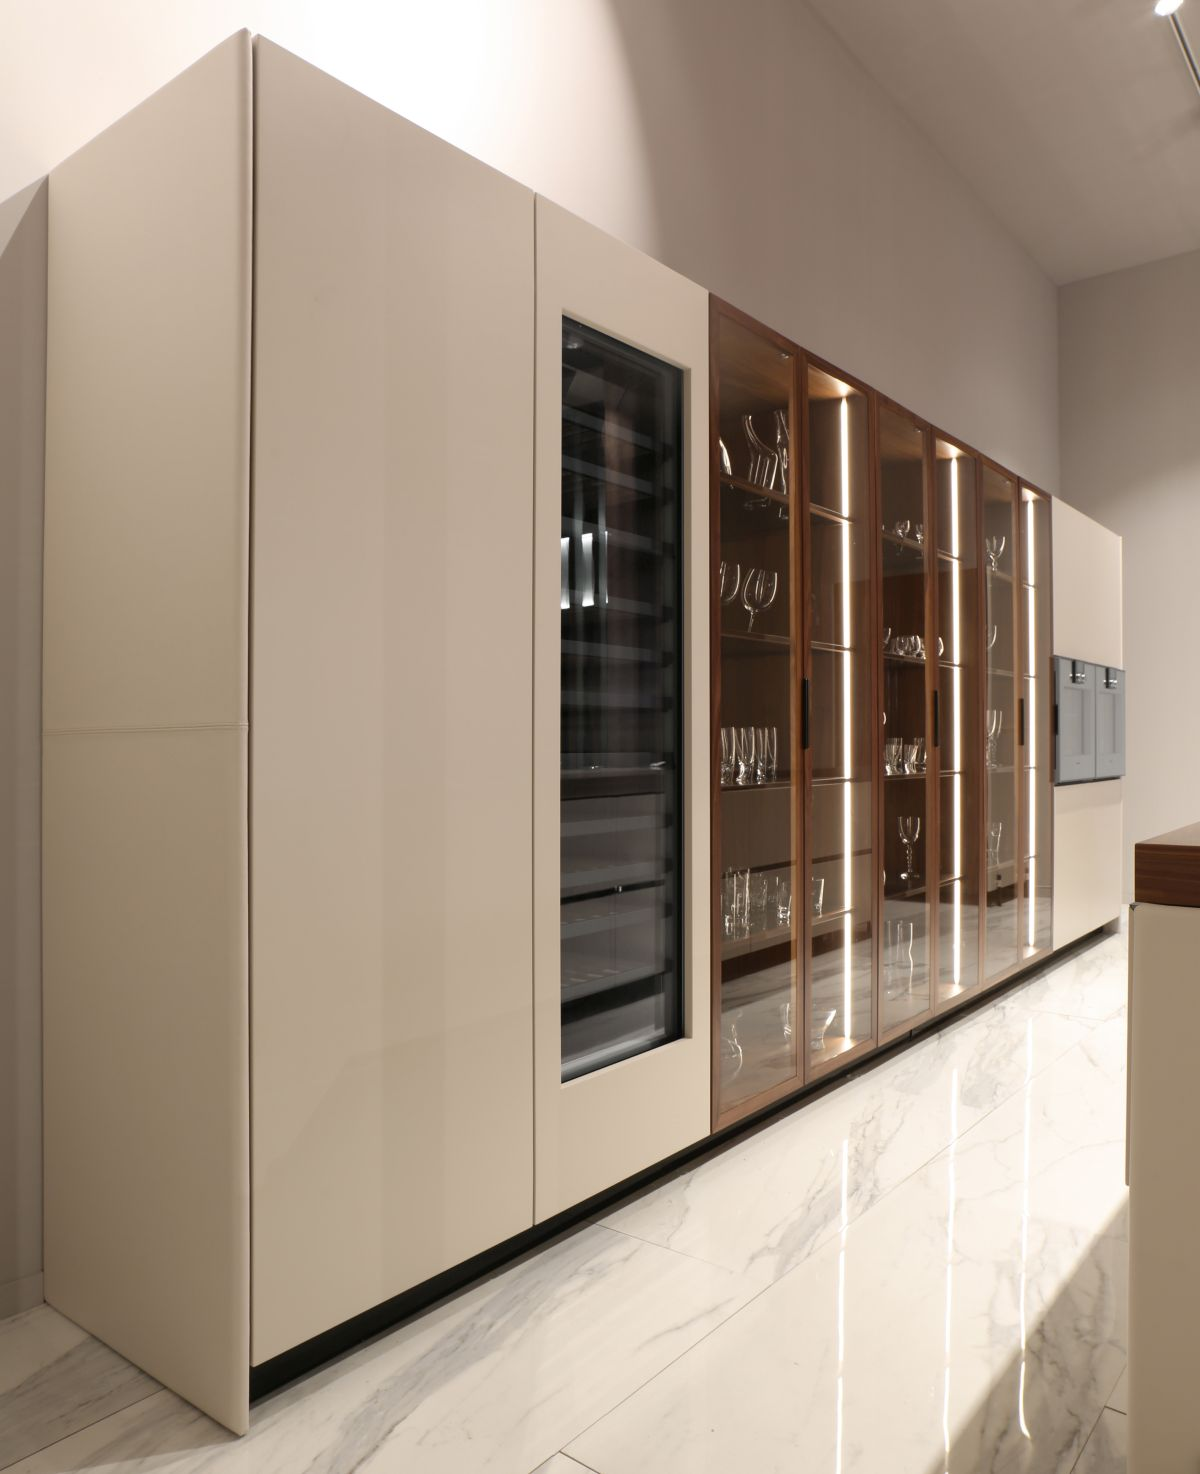 A selection of electrical appliances complete the kitchen, blending into the design perfectly and flawlessly